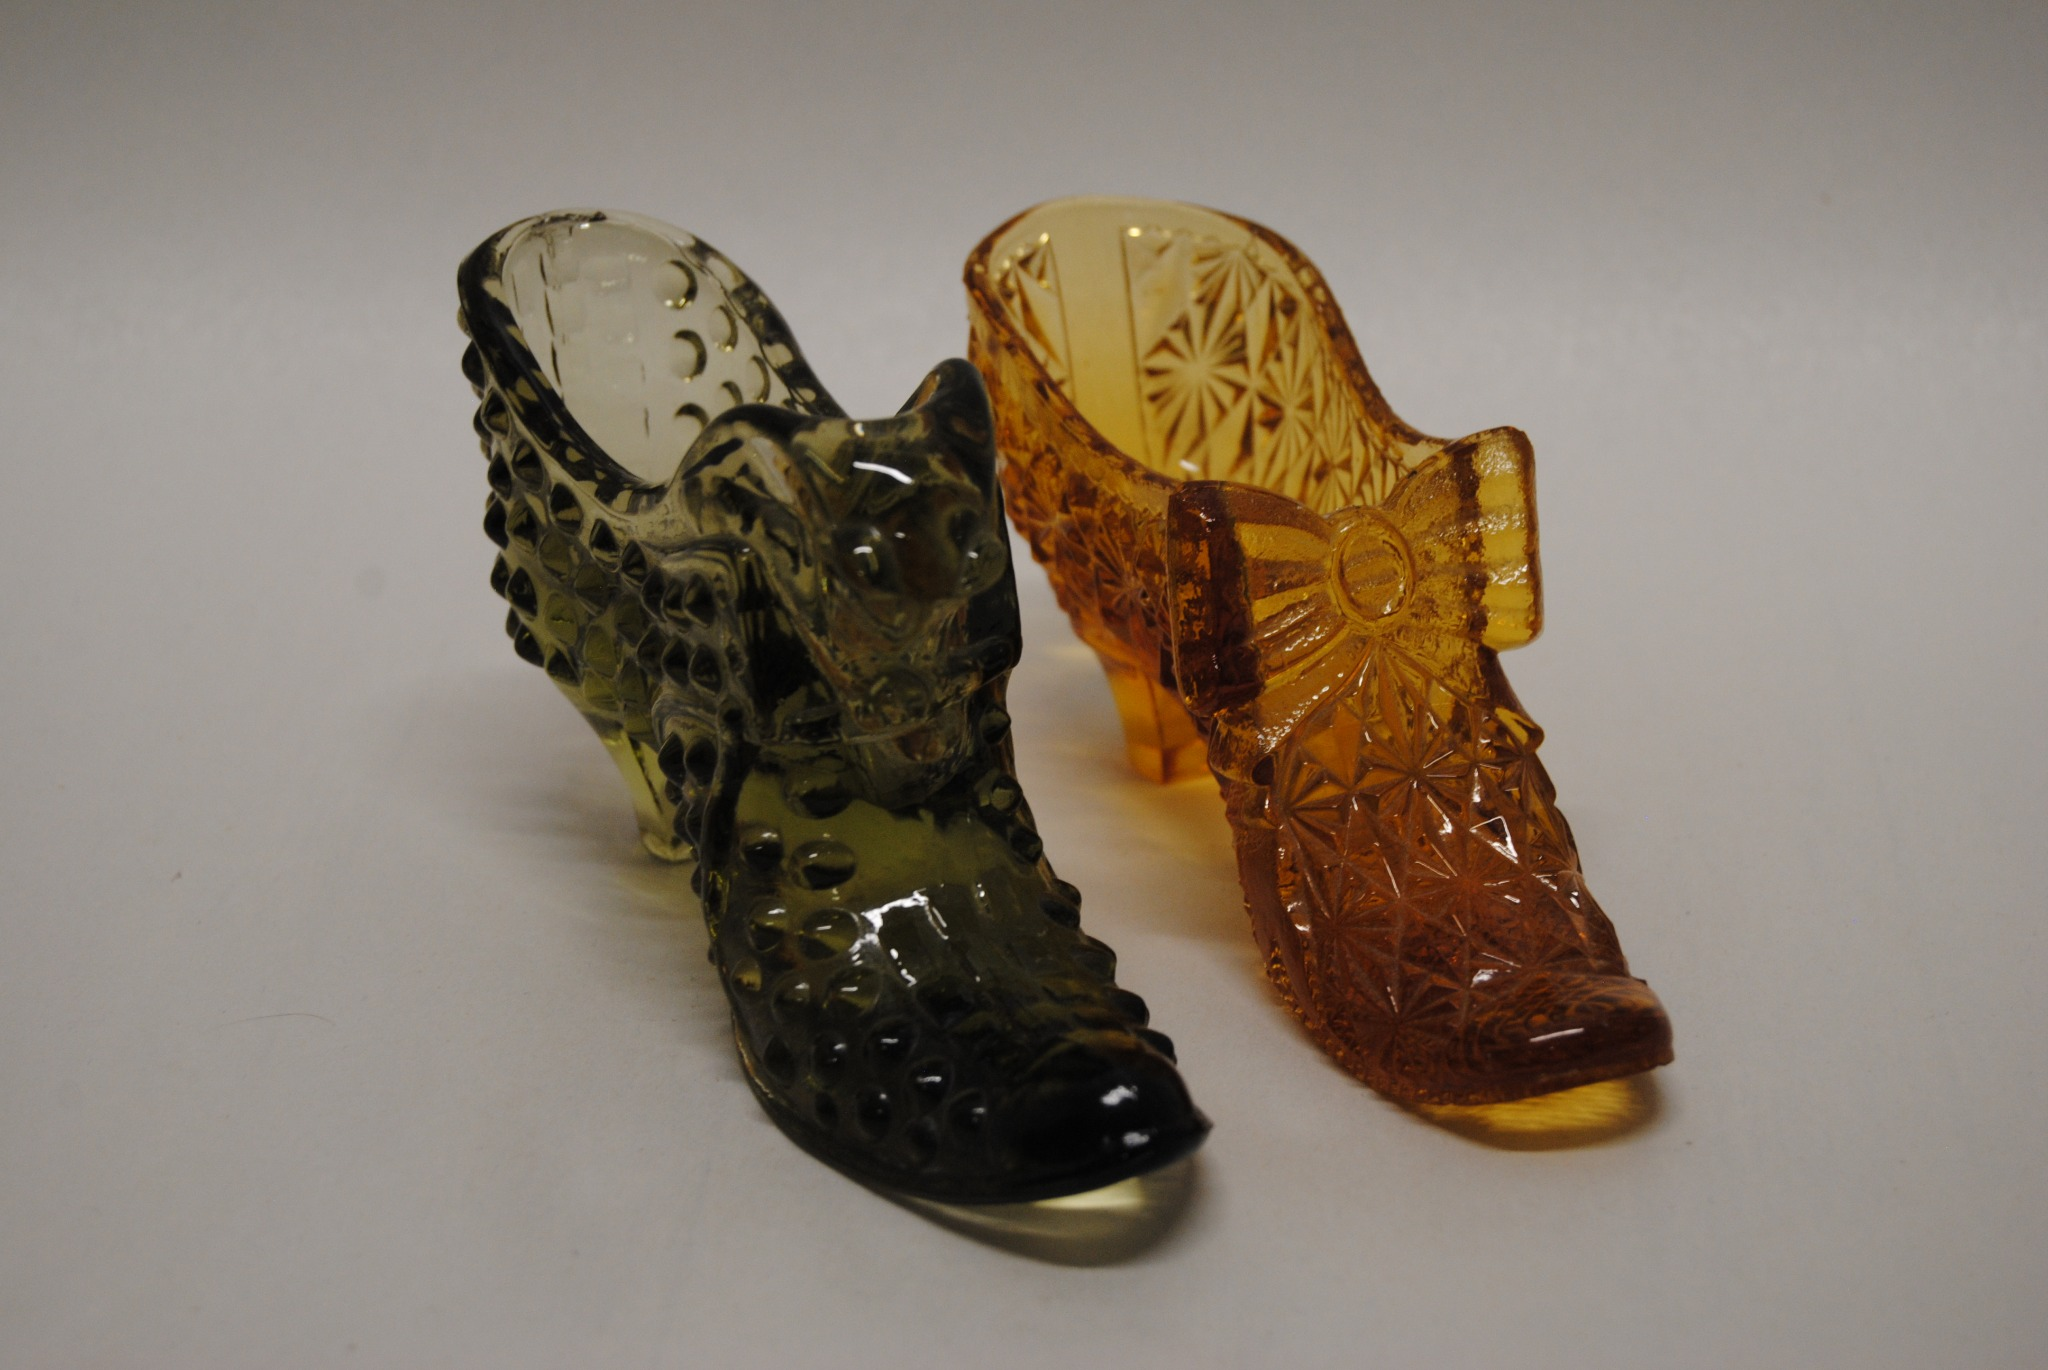 Vintage Lot of 2 Fenton Glass Slippers Green and Amber Glass (T)